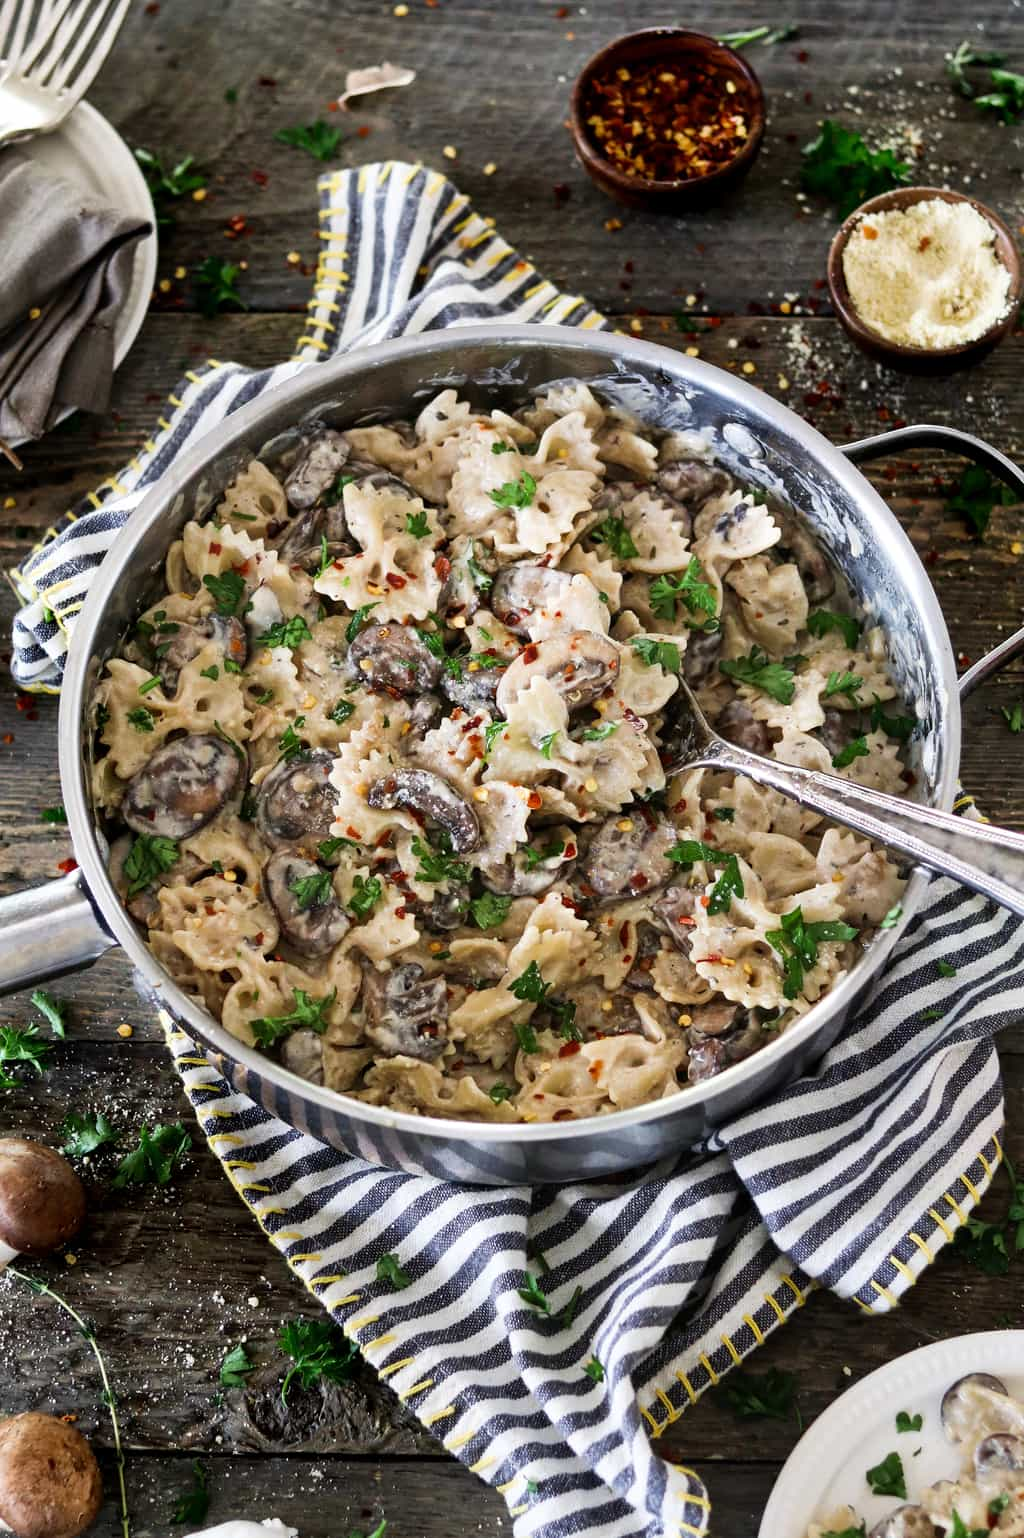 This Vegan Mushroom Stroganoff is savory, comforting and oh-so creamy! It's nut-free, soy-free and much healthier than its non-vegan counterpart.